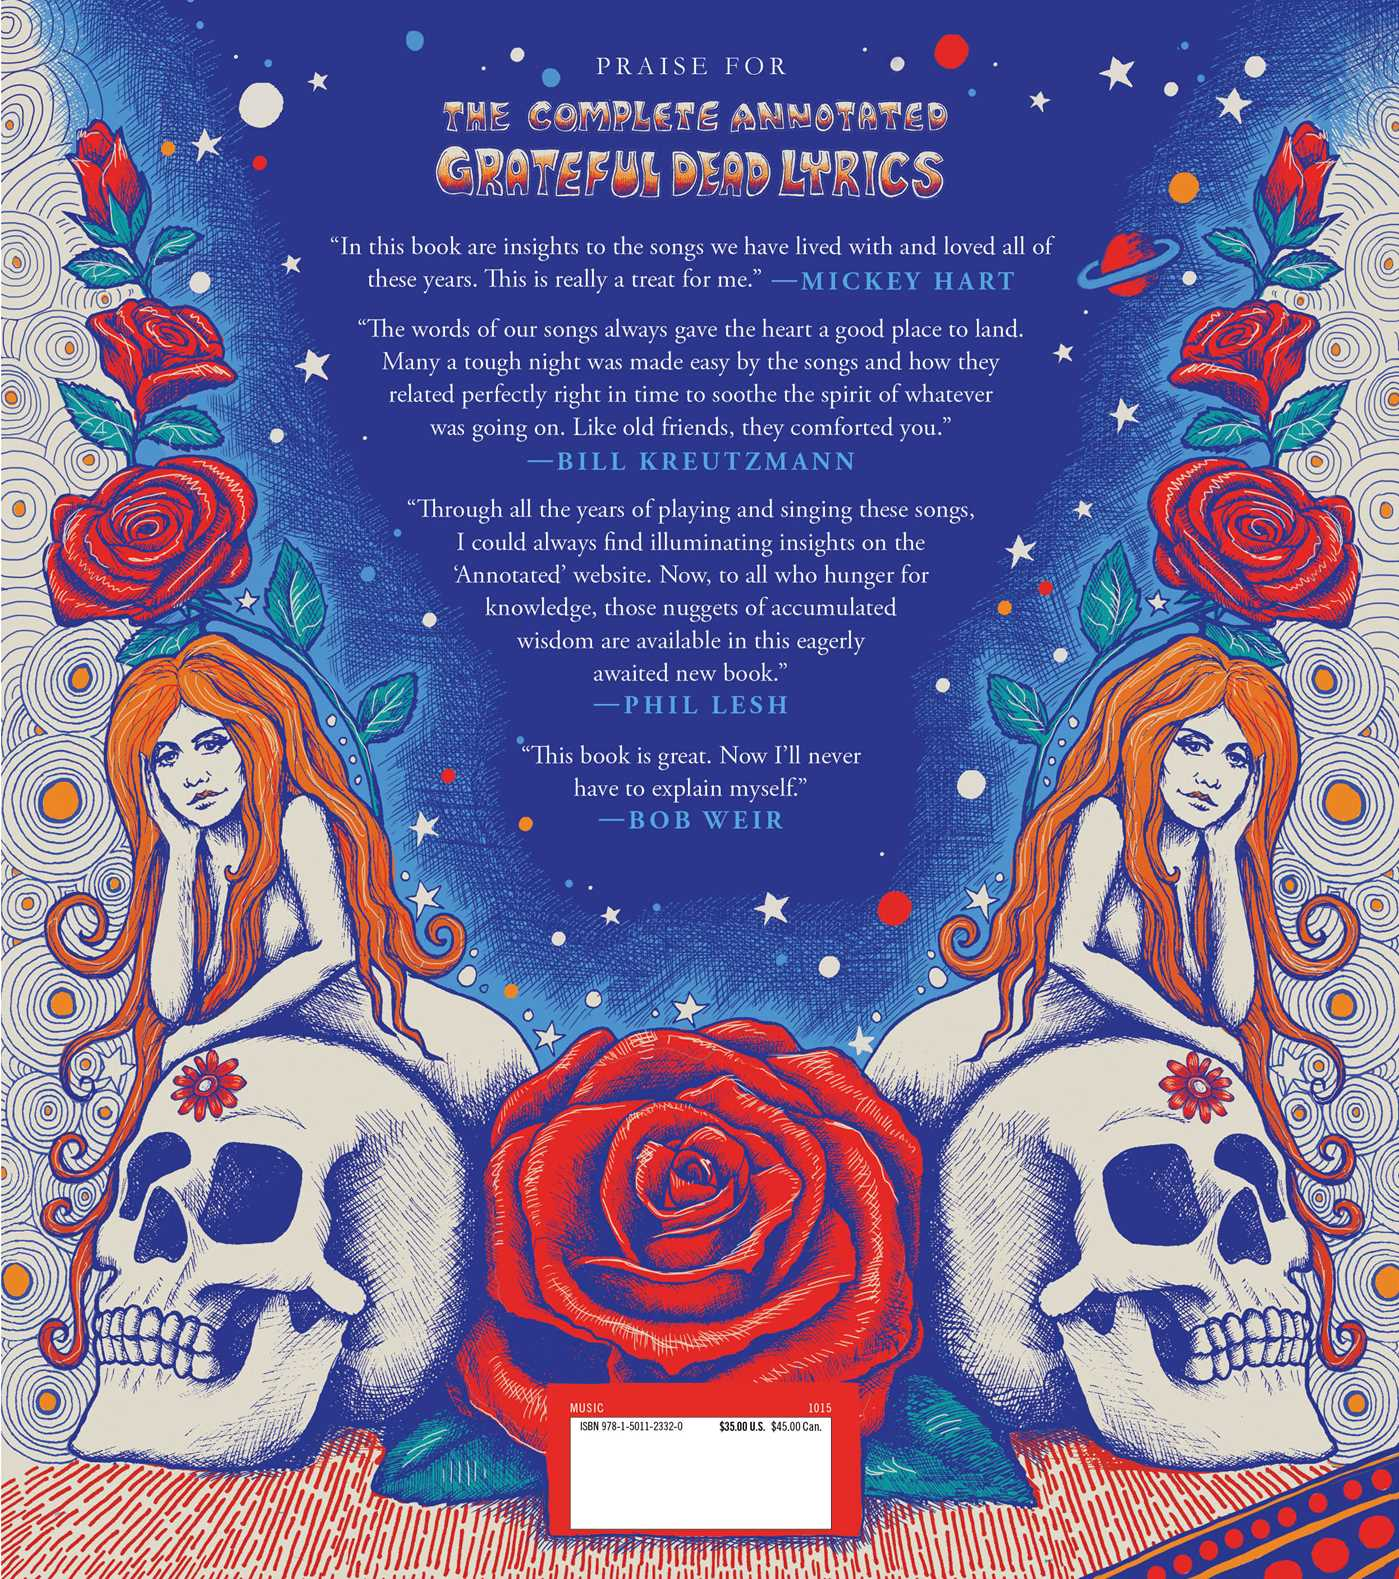 The Complete Annotated Grateful Dead Lyrics | Book by David G  Dodd